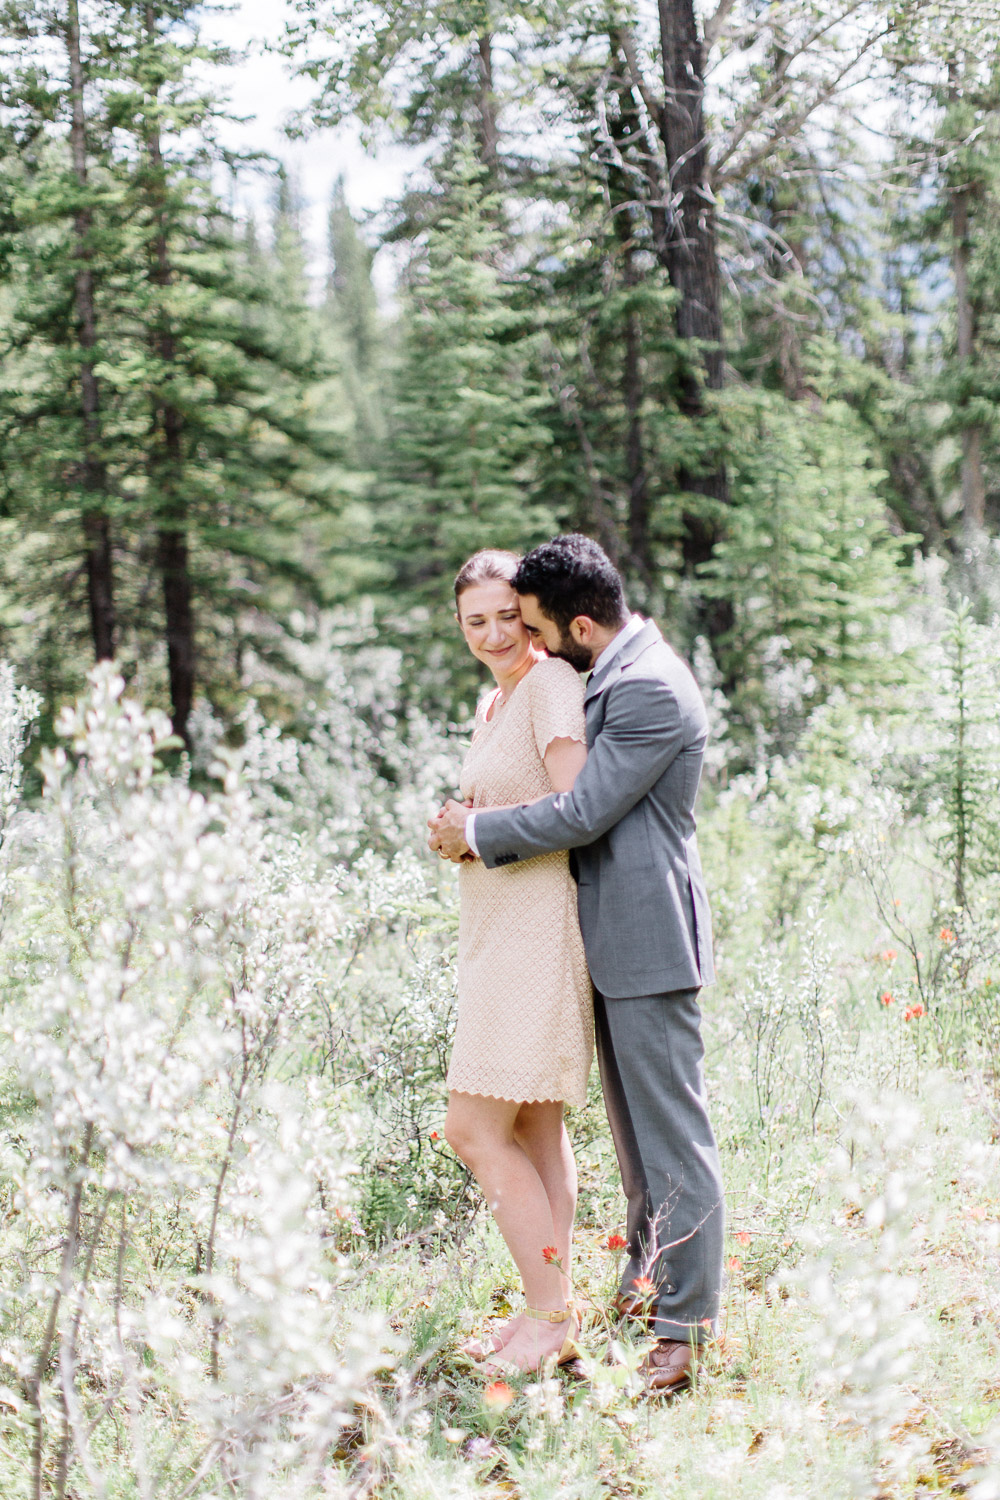 Banff elopement photographer - calgary wedding photographer